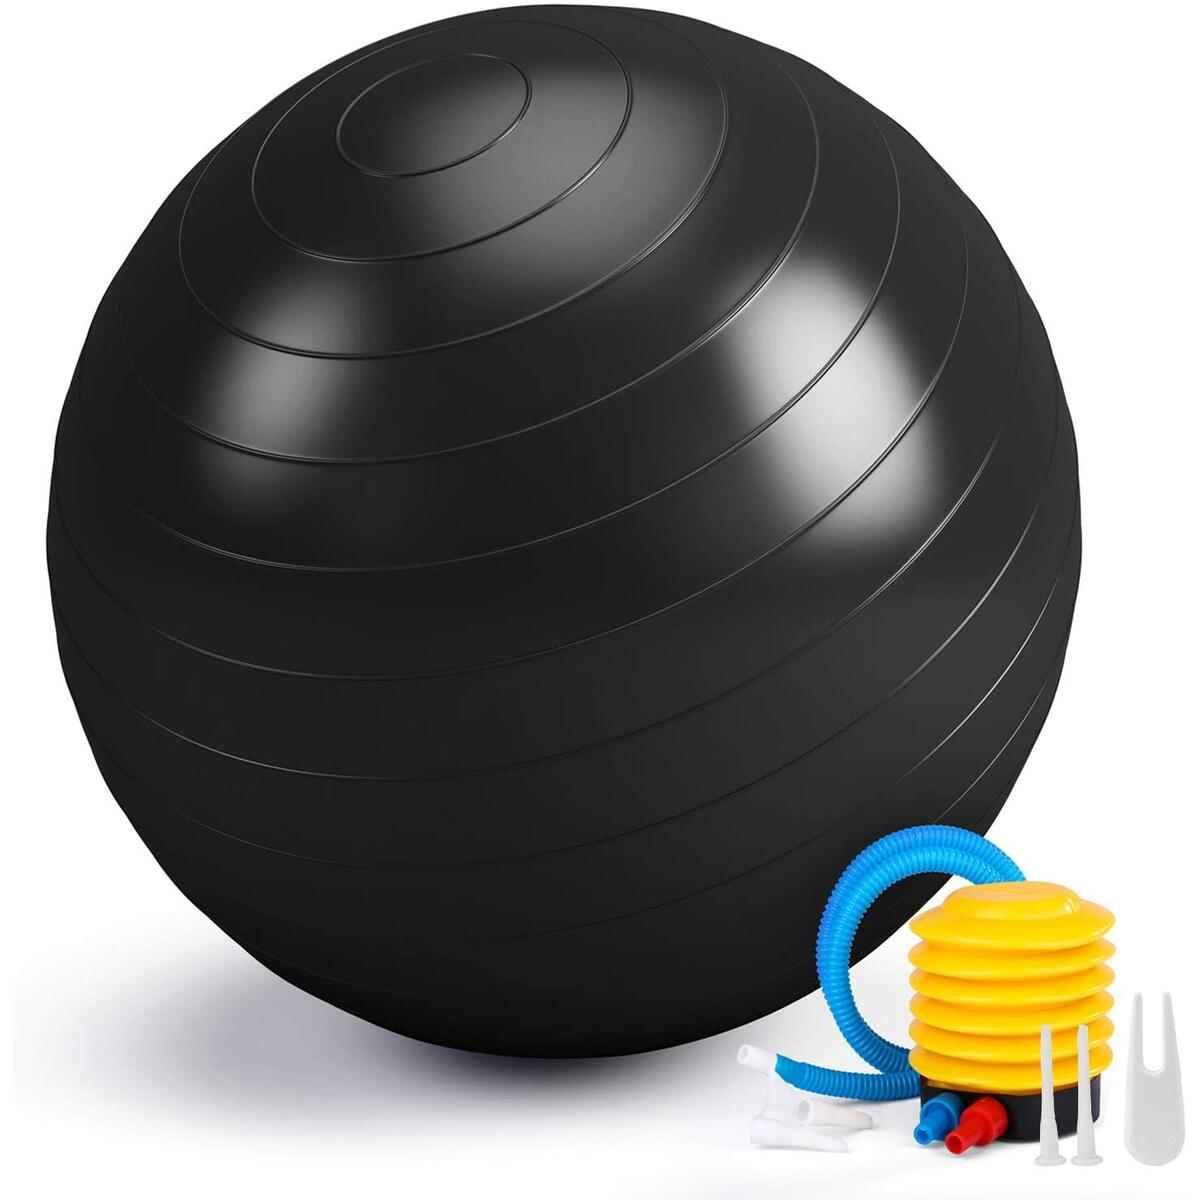 Smartor Exercise Ball 65CM Fitness Ball, Anti-Burst Stability Ball with Quick Pump, Professional Balance Ball for Pilates, Yoga, Core Strength, Birthing Exercise